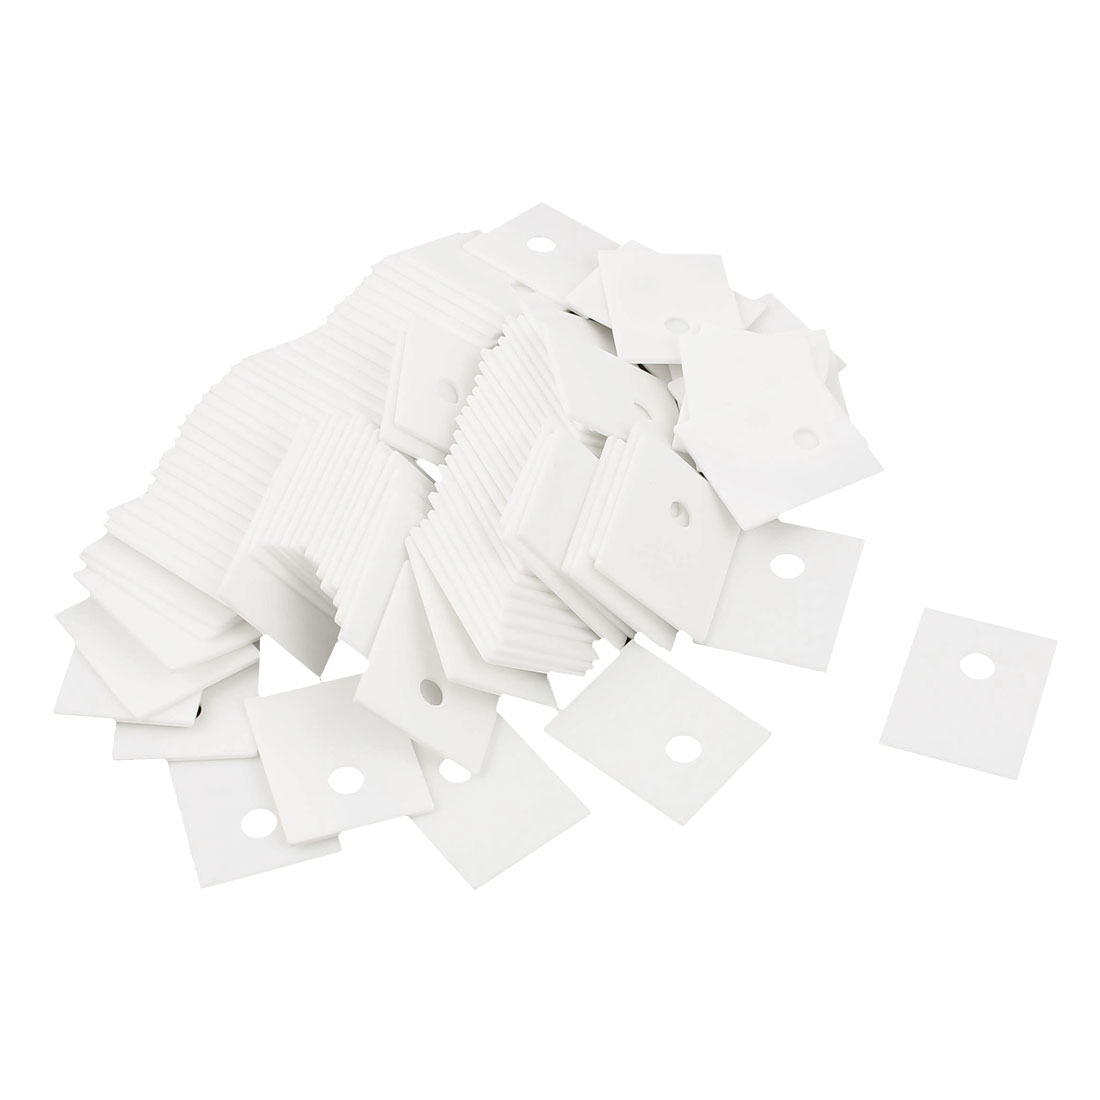 100Pcs TO-3P TO-247 20x25mm Ceramic Insulator Plates Sheet for Transistor Heat Sink